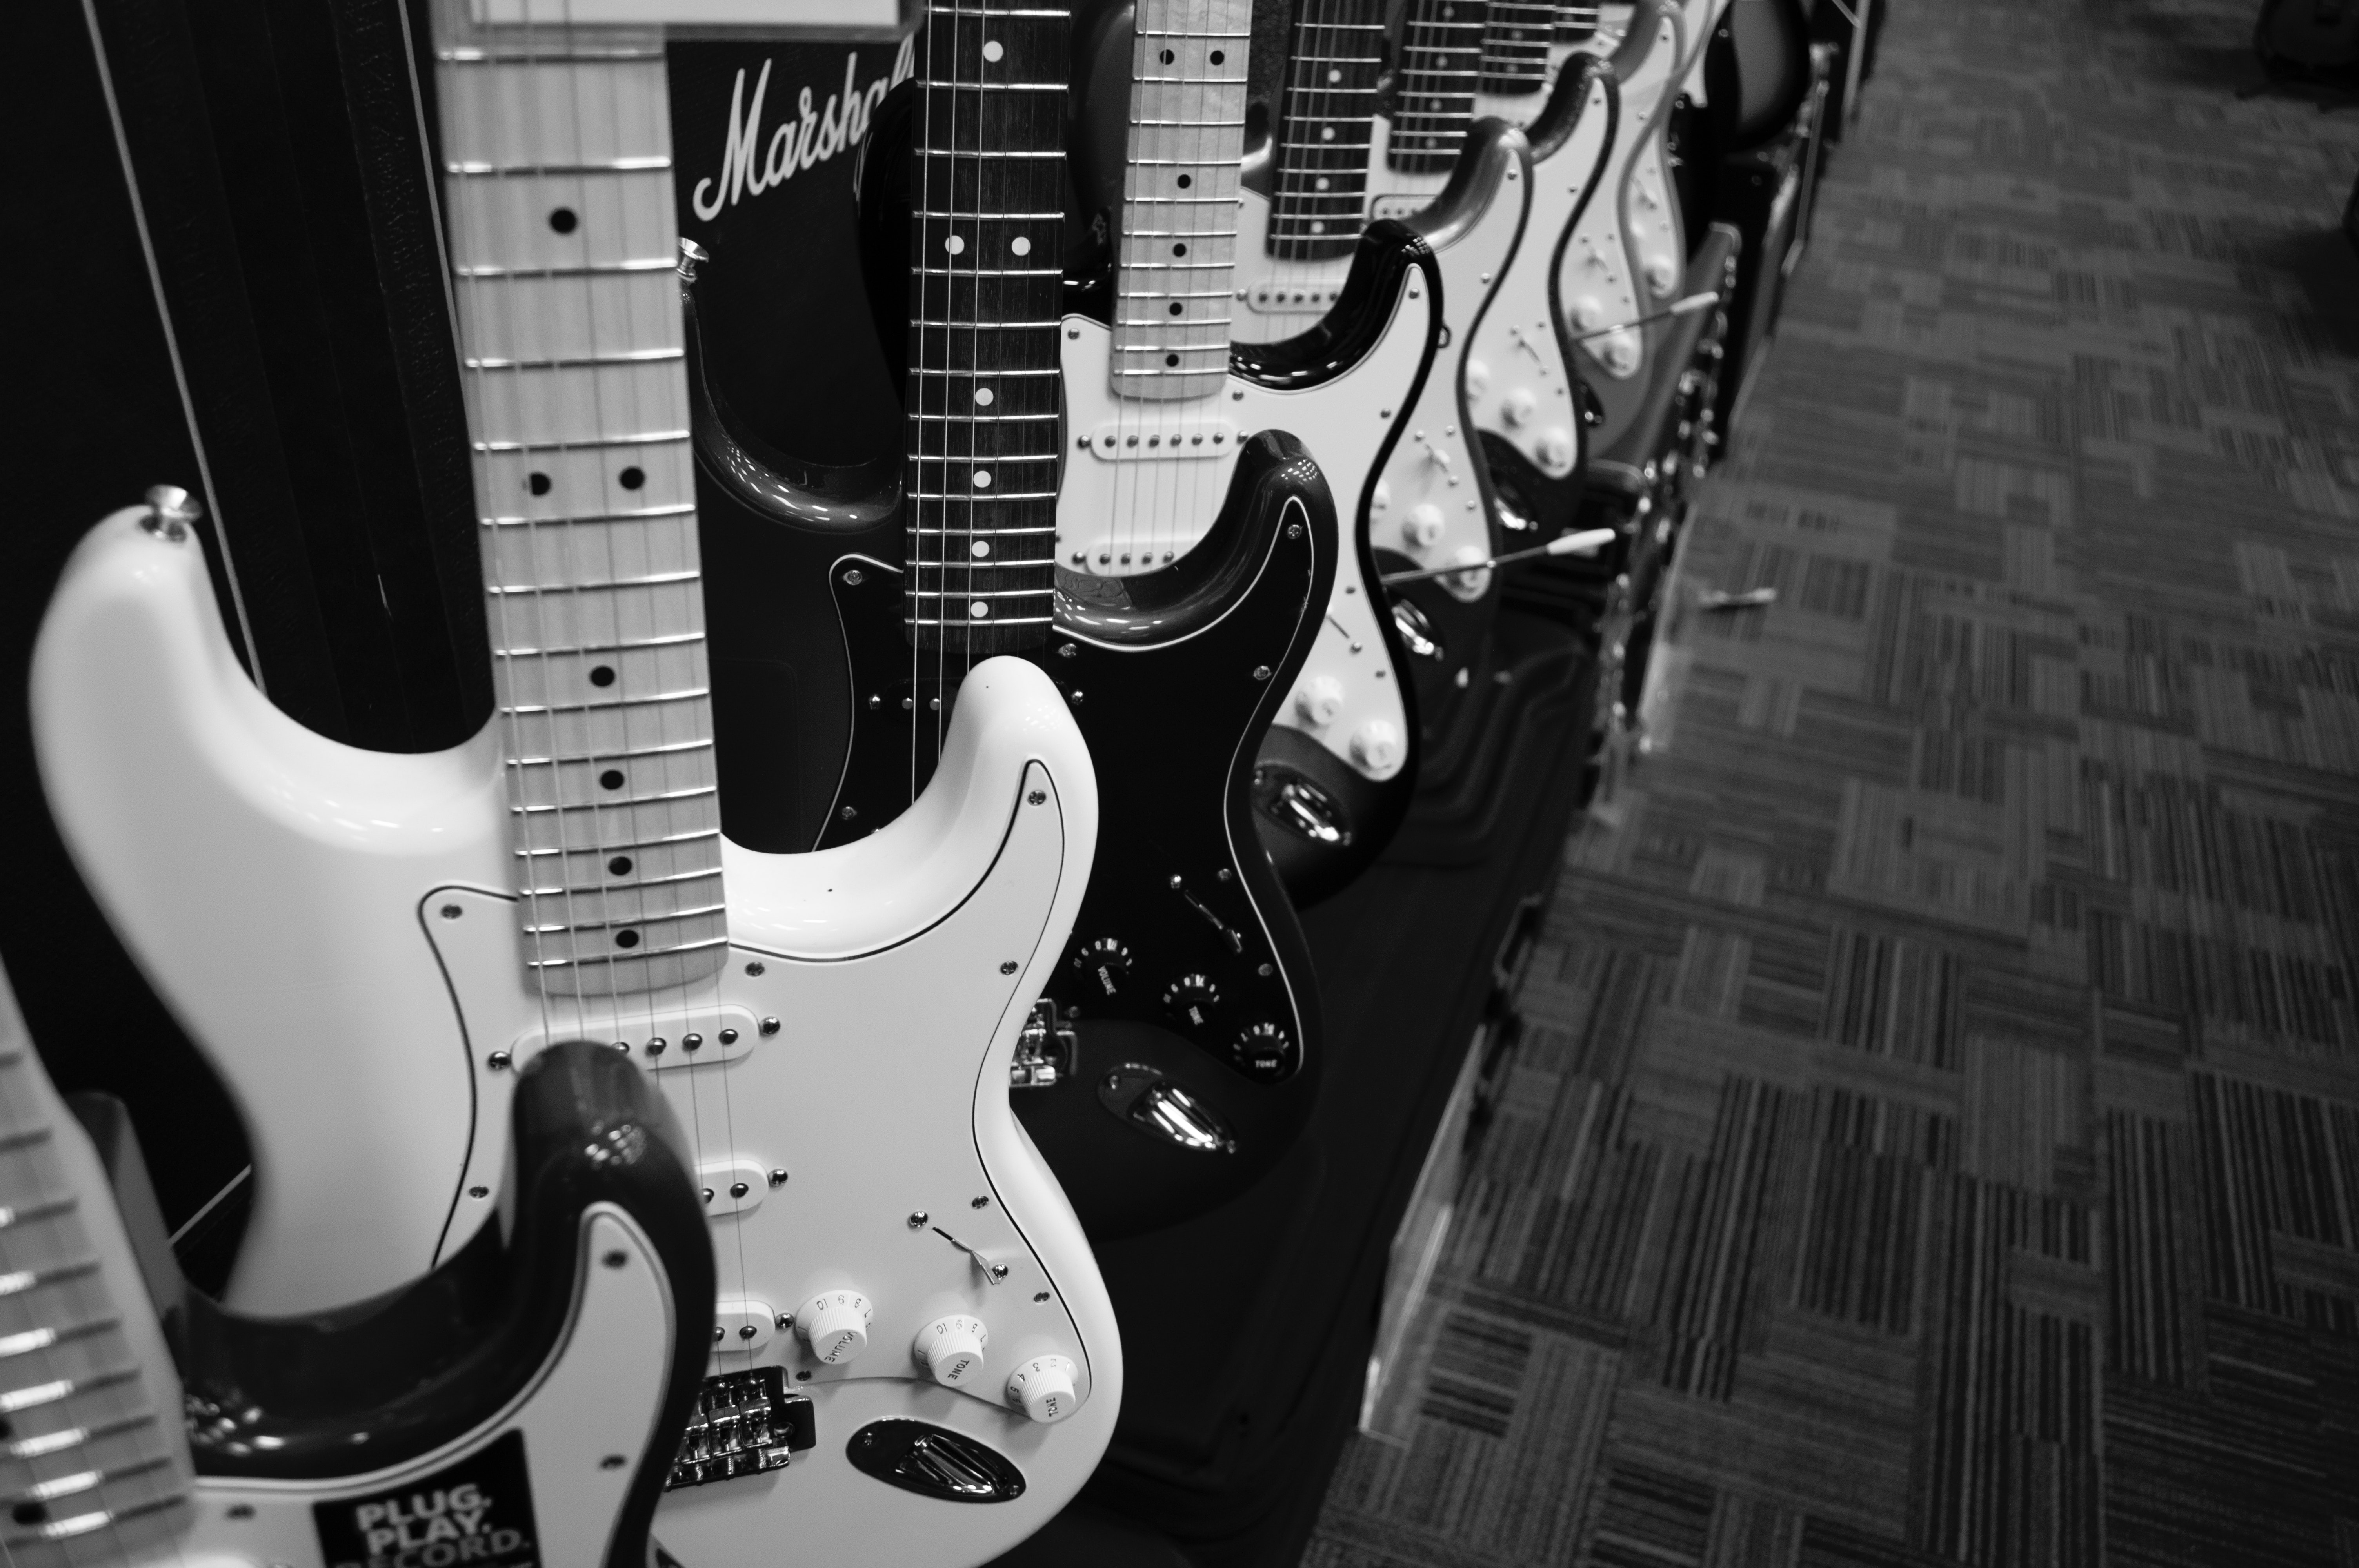 Grey Scale 8 Electric Guitars, Electric, Guitars, Music, Musical instrument, HQ Photo